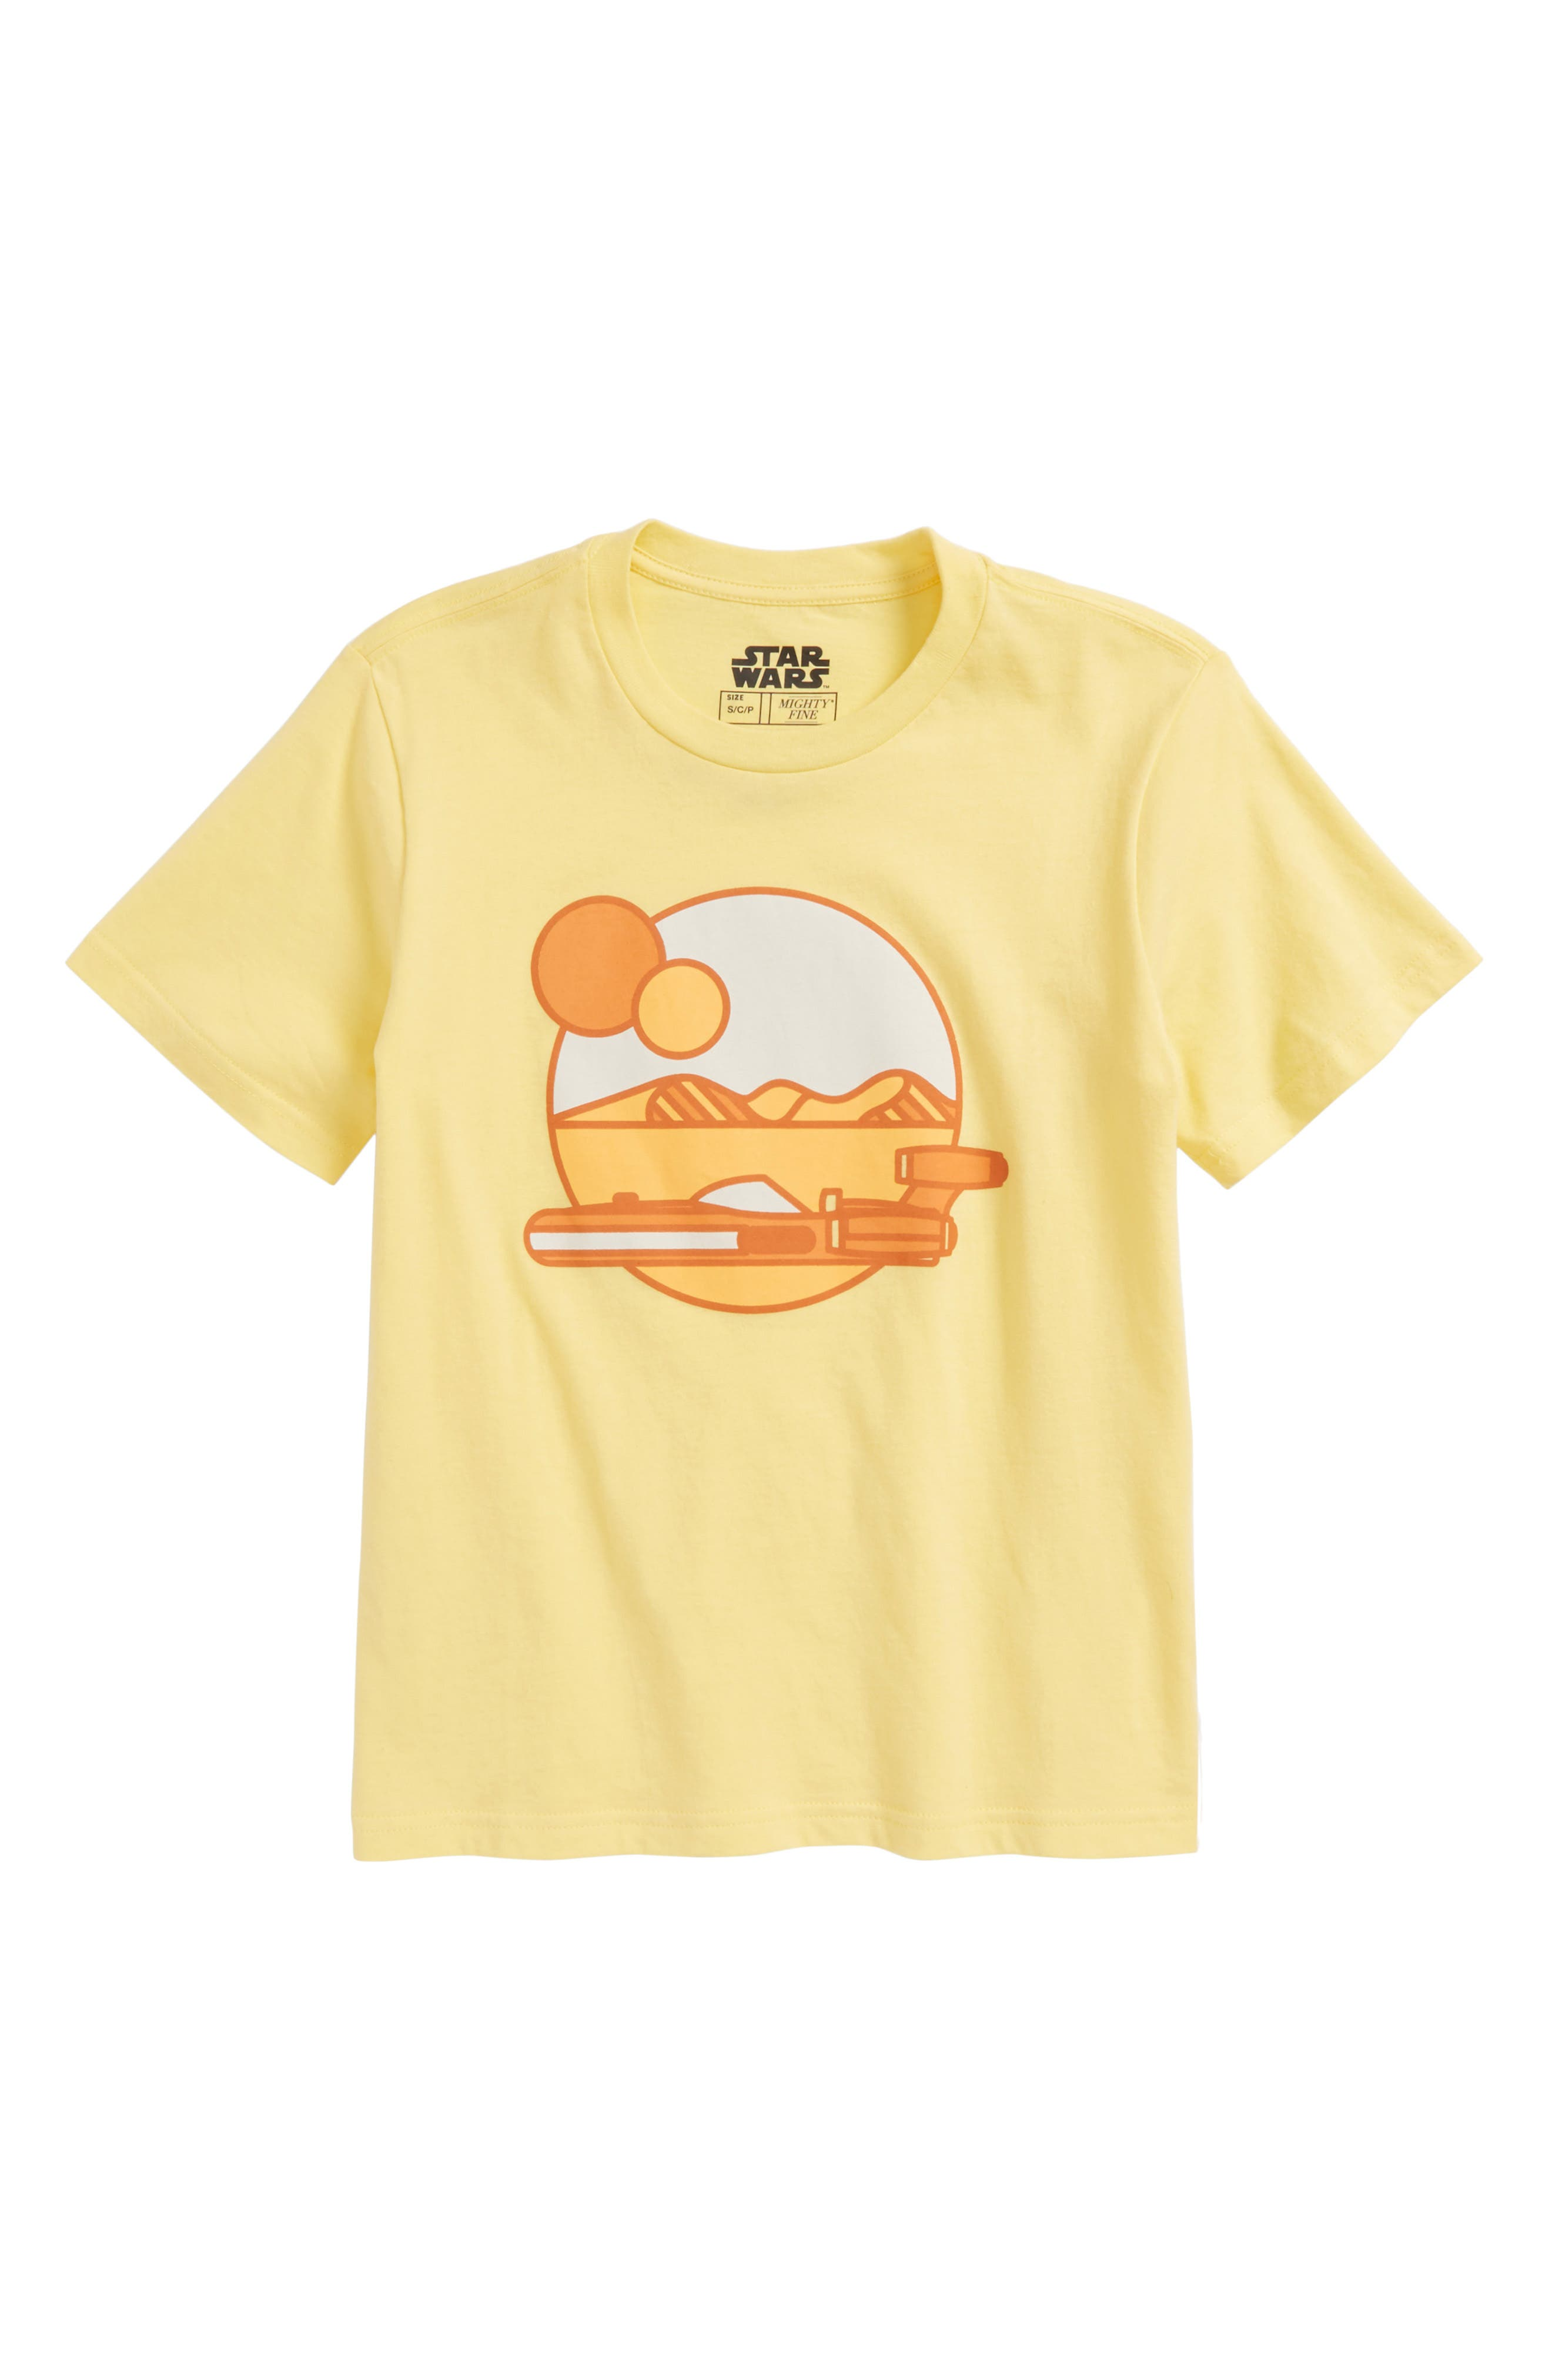 Star Wars<sup>™</sup> Tatooine Sunset Graphic T-Shirt,                             Main thumbnail 1, color,                             Yellow